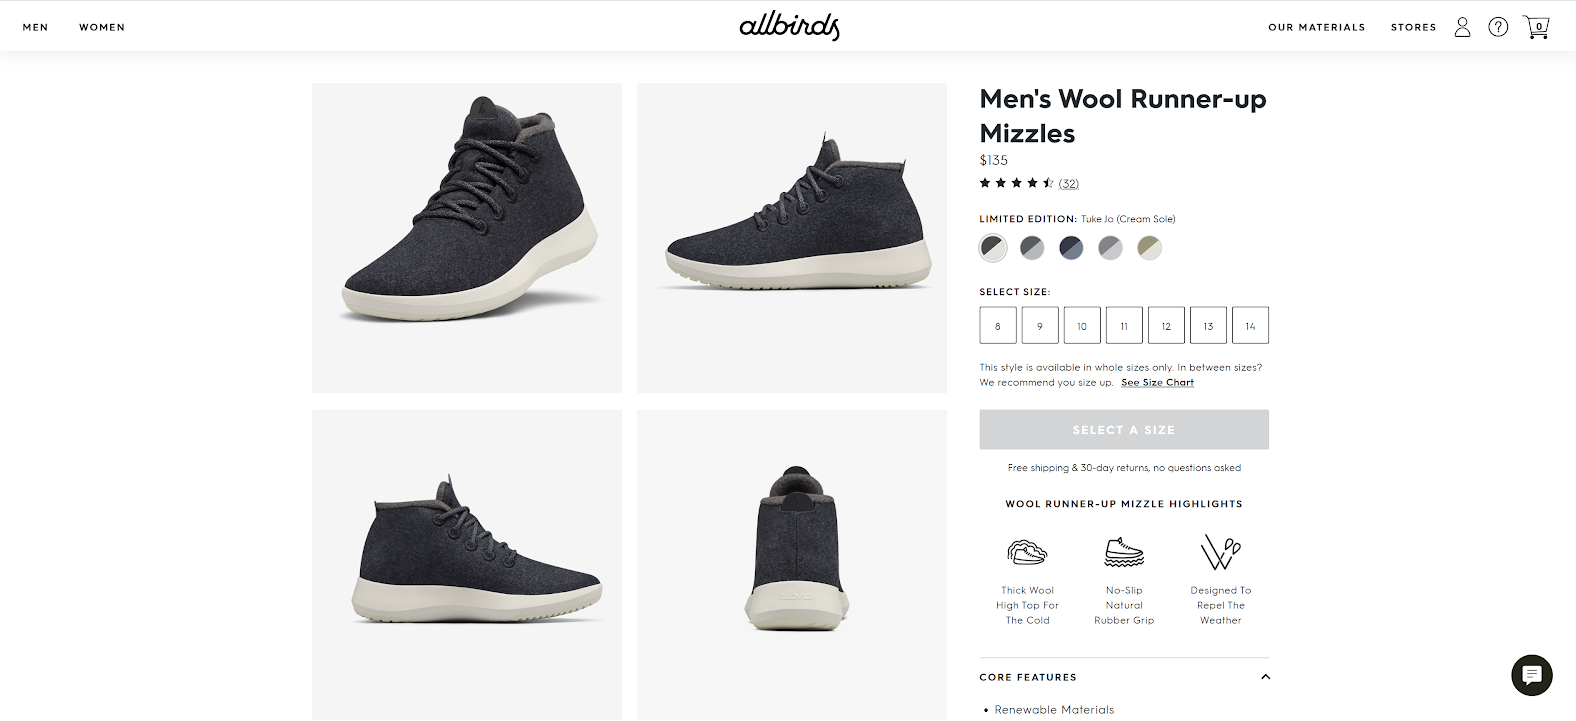 High resolution images from Allbirds